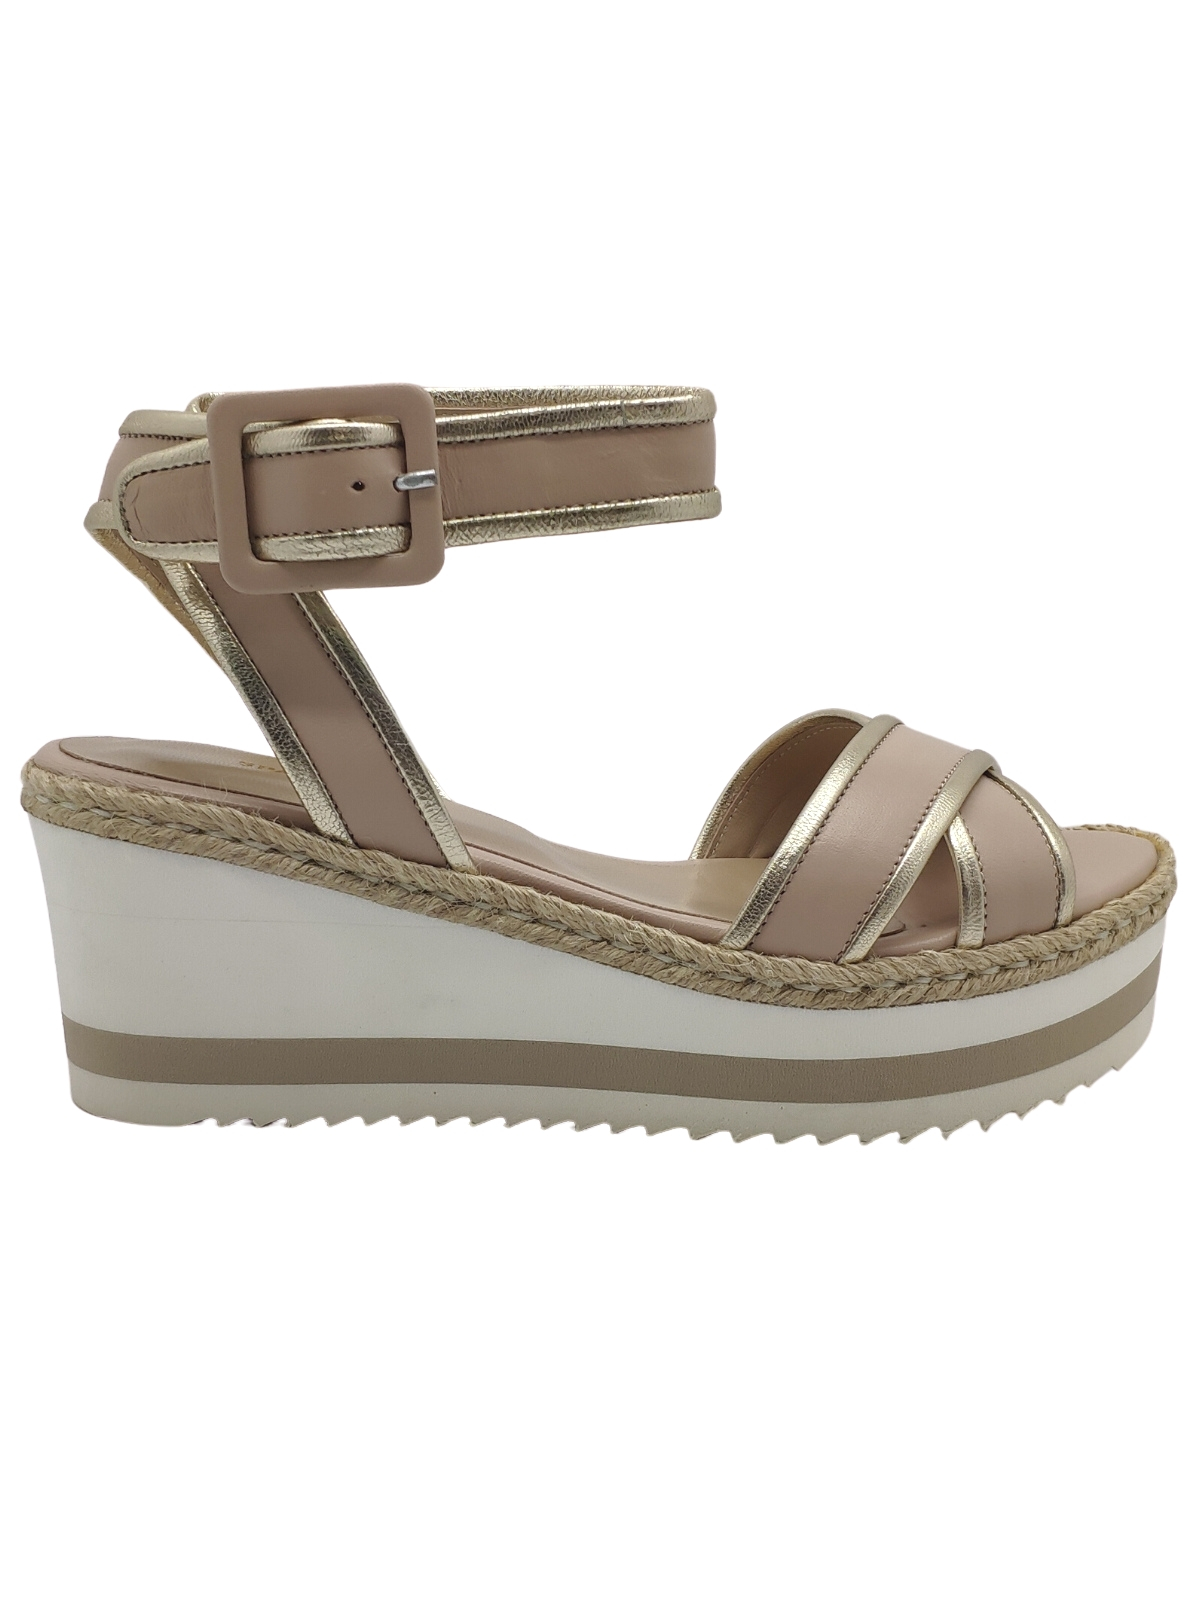 Women's Wedge Sandals and Strap Spatarella | Wedge Sandals | 9328NUDE